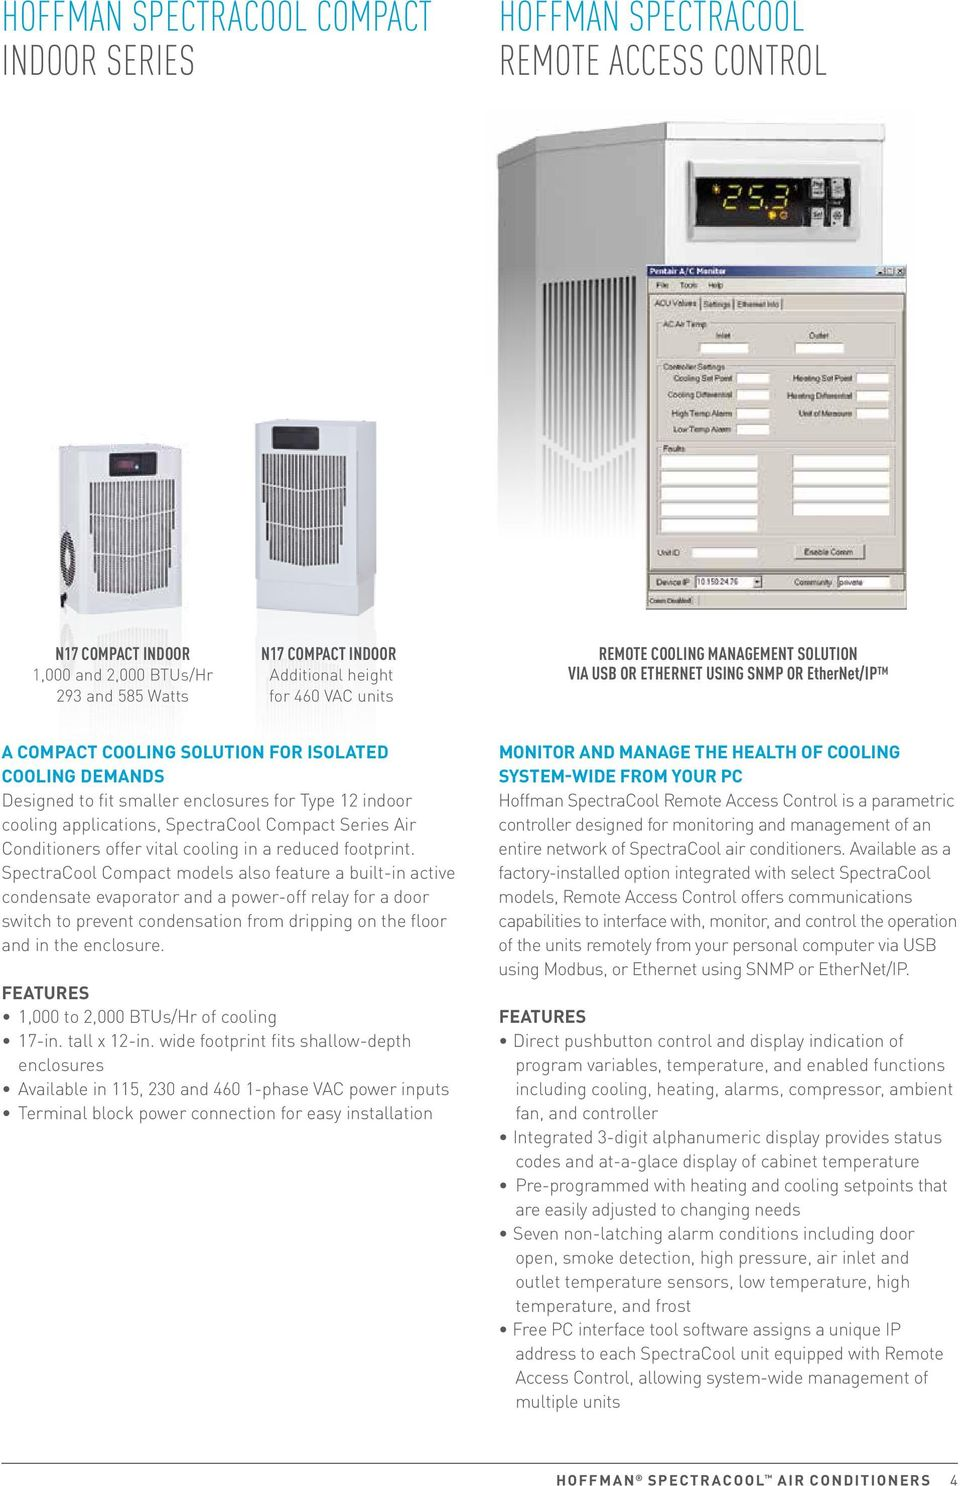 Spectracool air conditioners pentair equipment protection mclean is applications spectracool compact series air conditioners offer vital cooling in a reduced footprint publicscrutiny Image collections